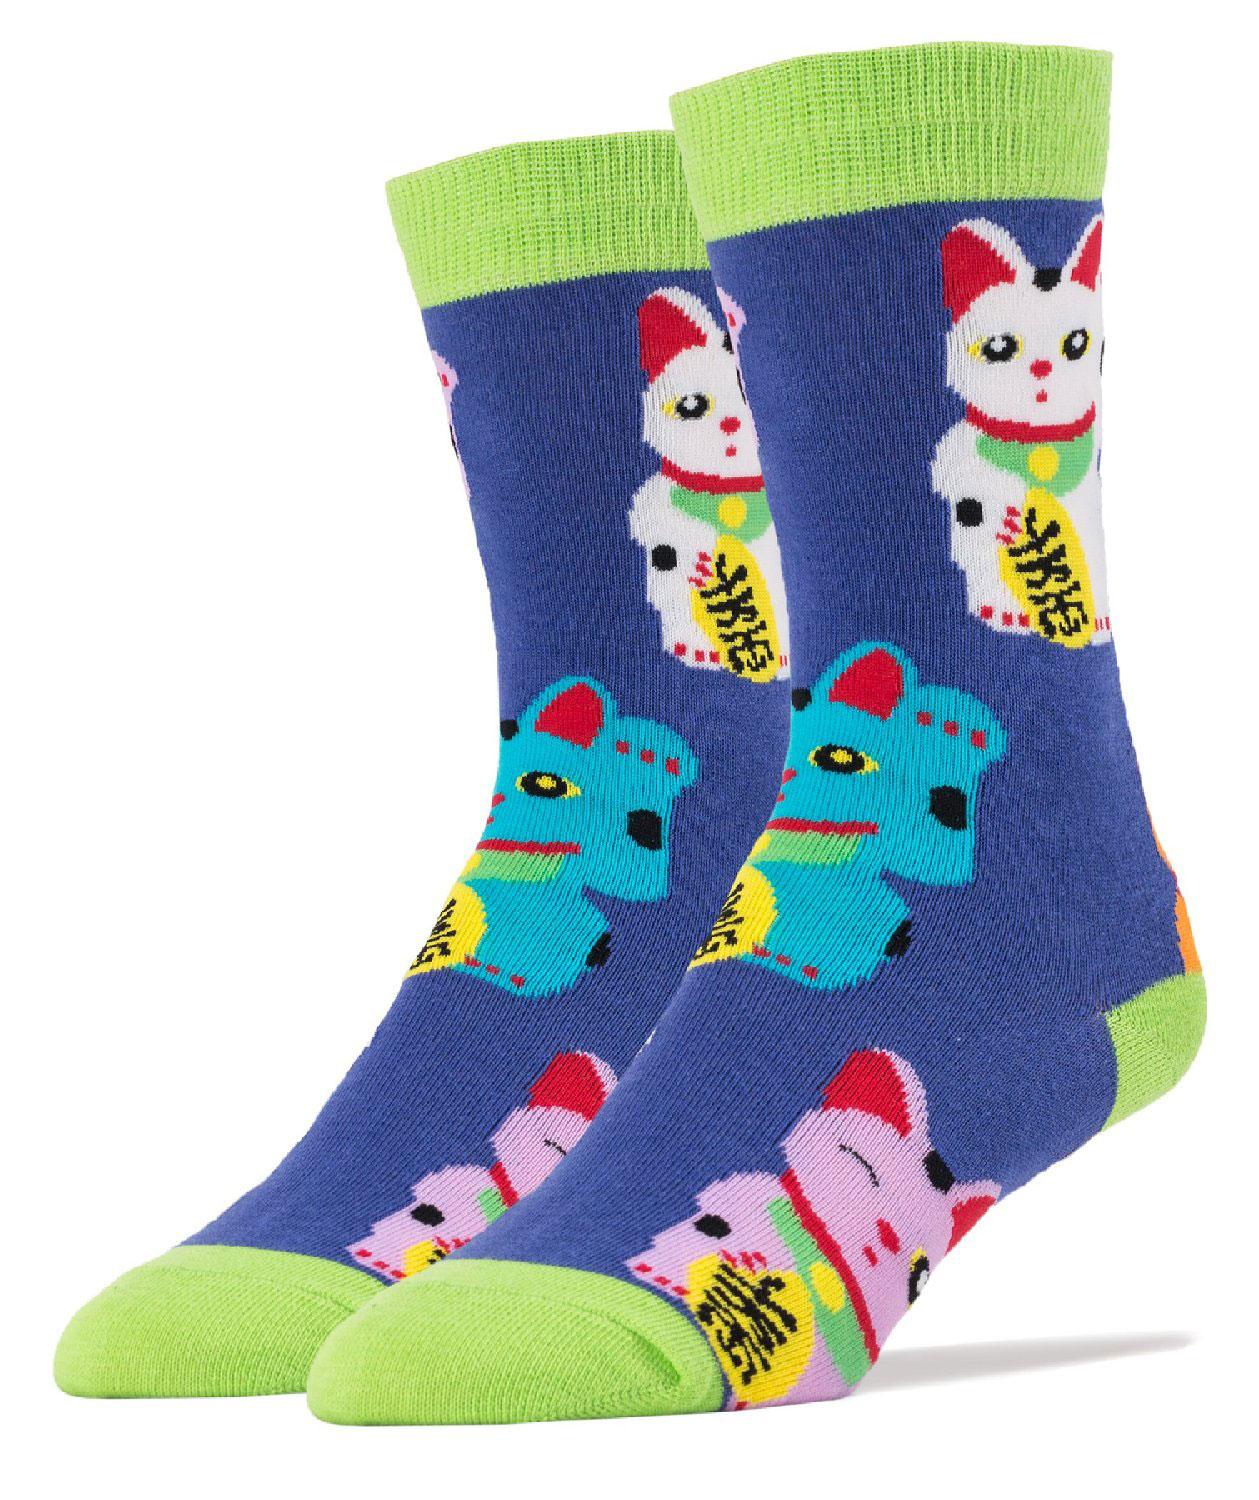 099a33d96e3f8 Oooh Yeah Men'S Luxury Combed Cotton Crew Socks - Lucky Cat ...